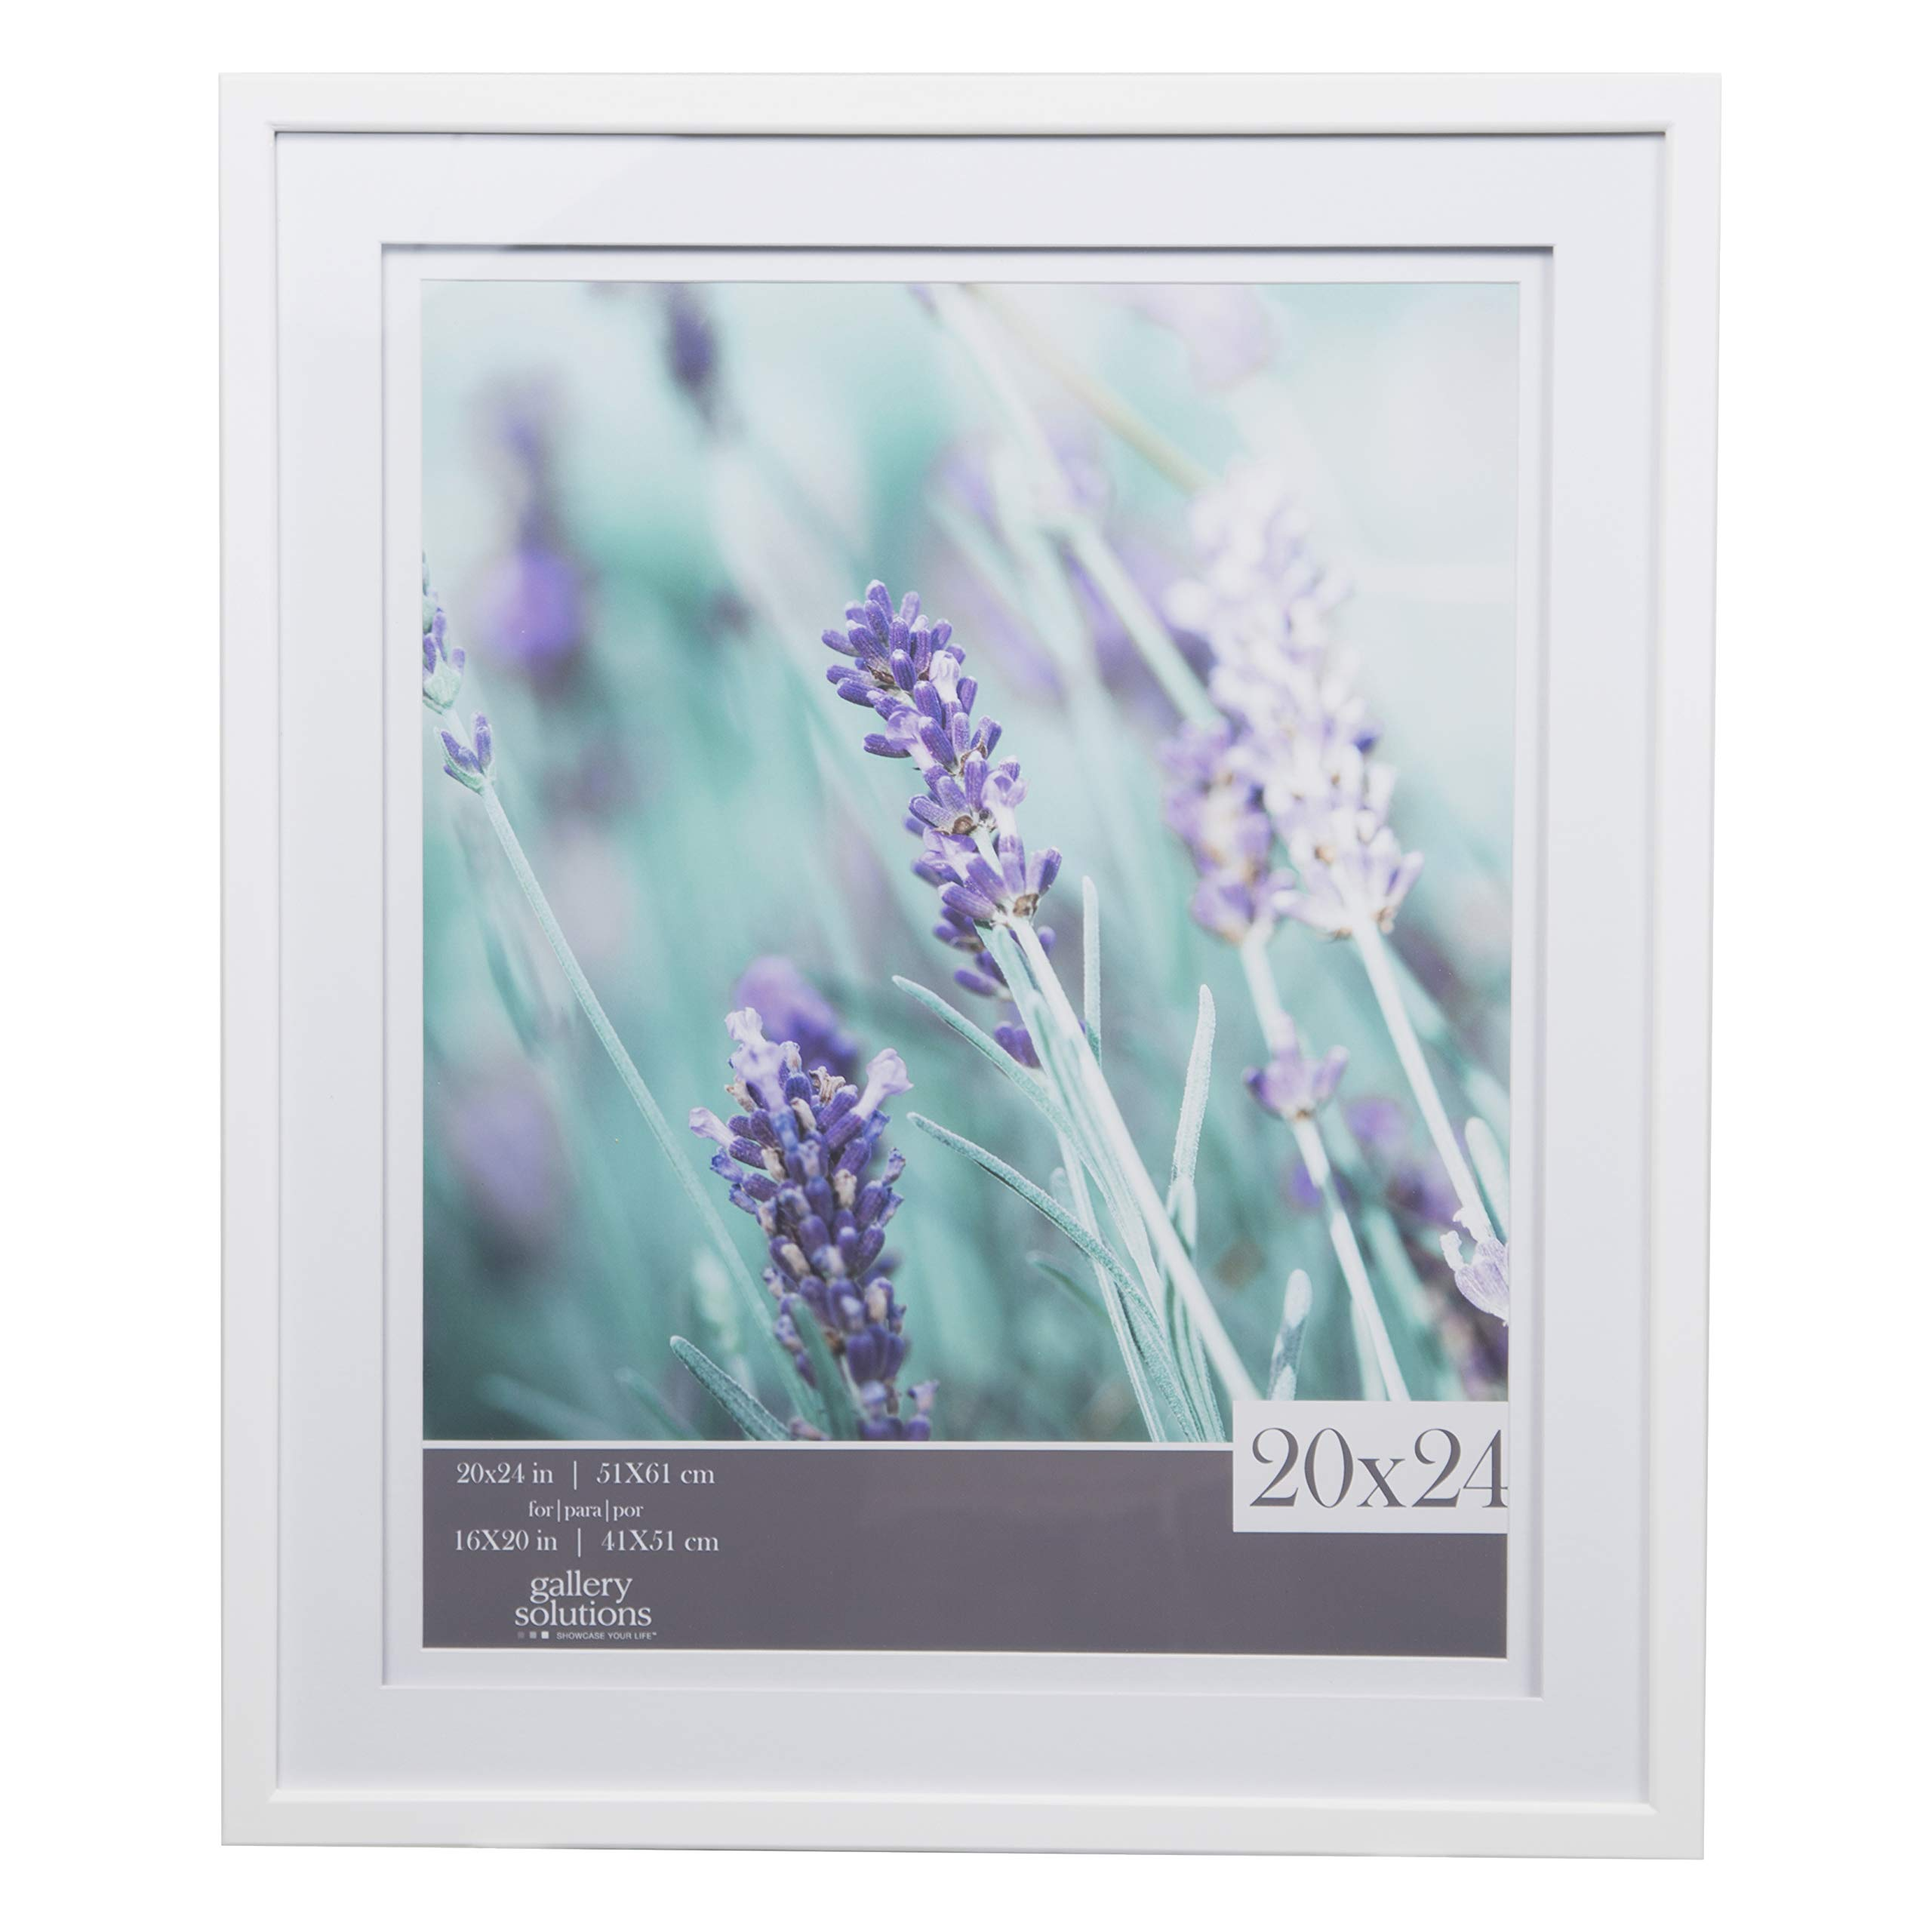 Gallery Solutions 20x24 White Wall Frame with Double White Mat For 16x20 Picture by Gallery Solutions